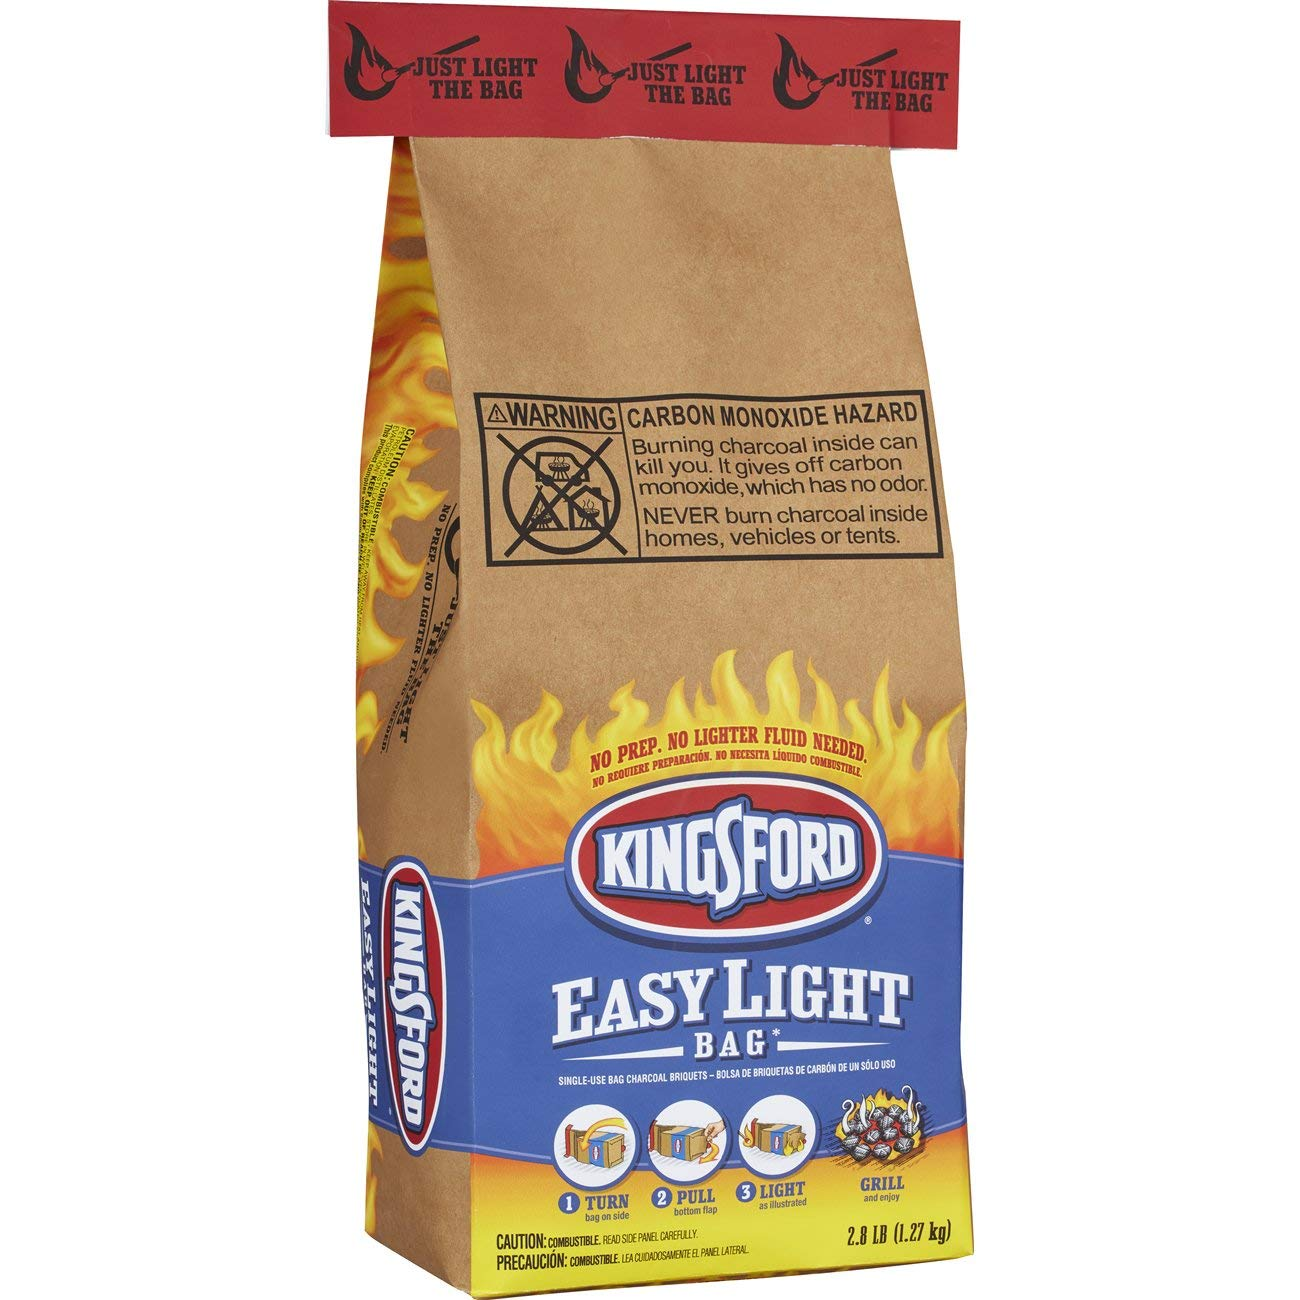 Kingsford Charcoal Briquettes in an Easy Light Bag, 2.8 Pounds (Pack of 6) by Kingsford